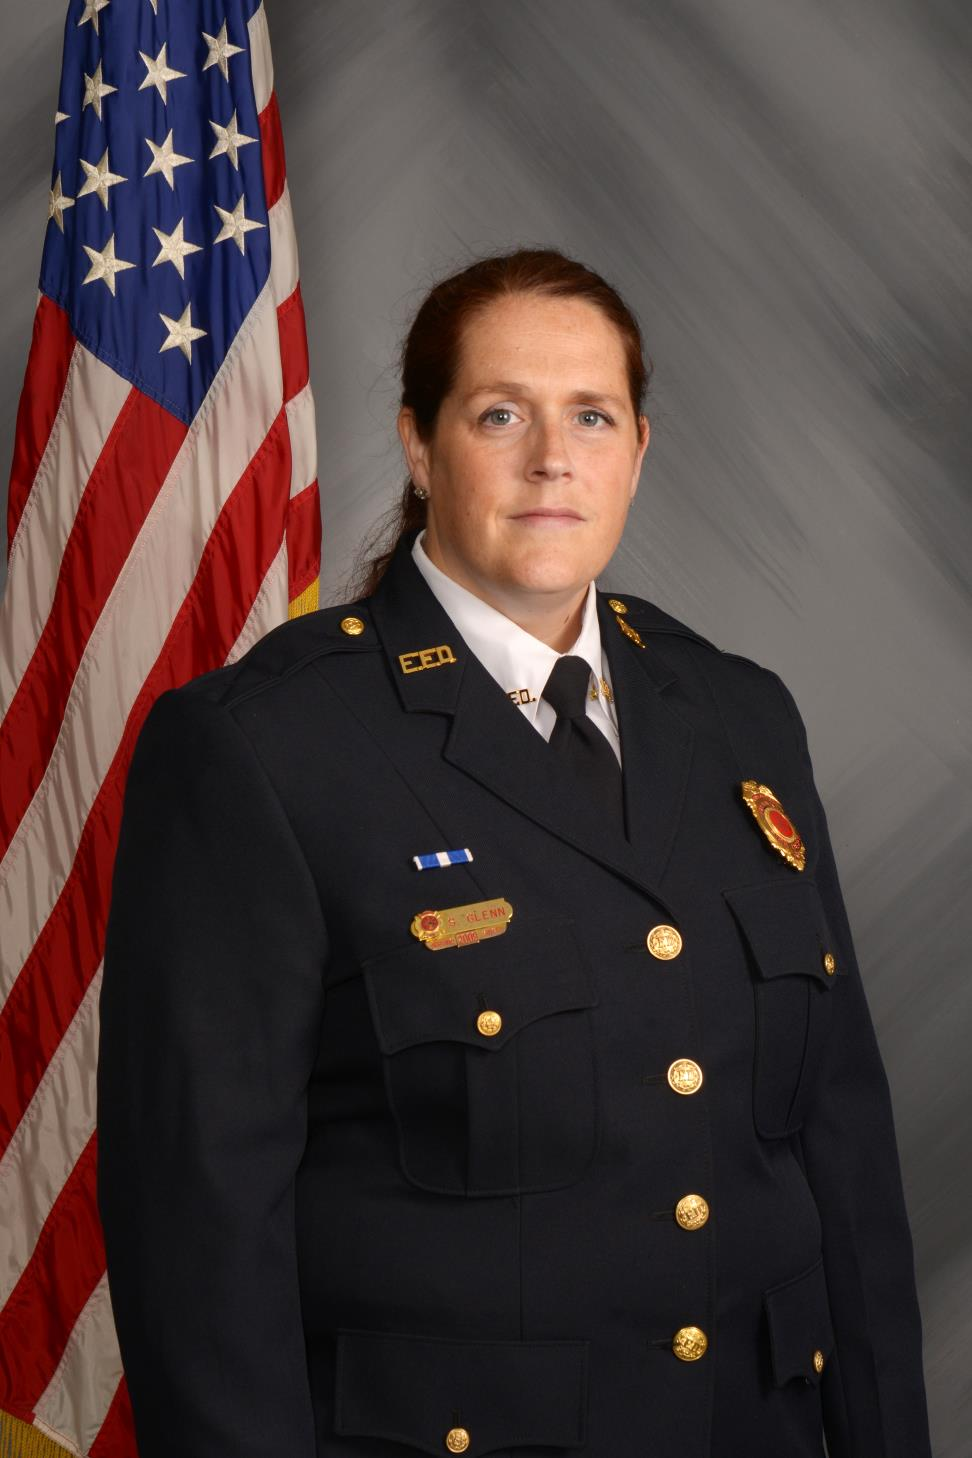 EMS Officer Sarah Glenn